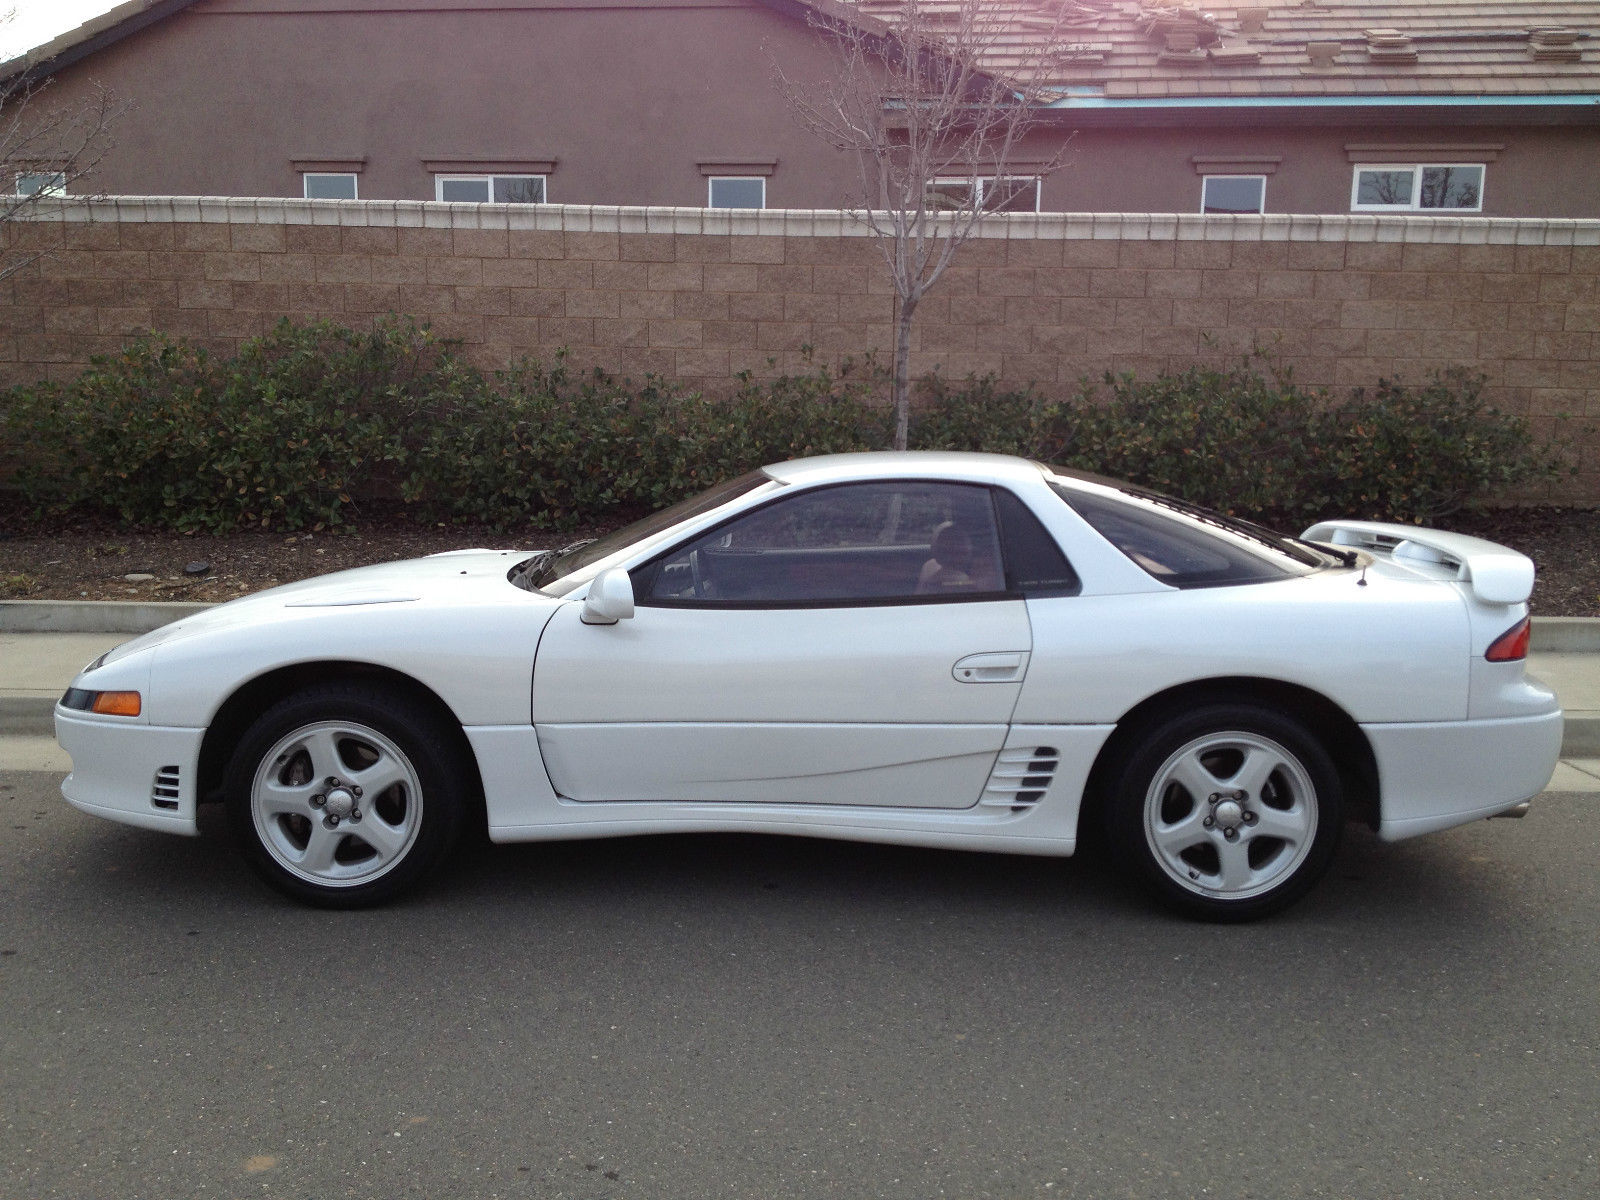 1991 mitsubishi 3000gt vr4 v6 twin turbo m t awd only 110k miles all original for sale in. Black Bedroom Furniture Sets. Home Design Ideas